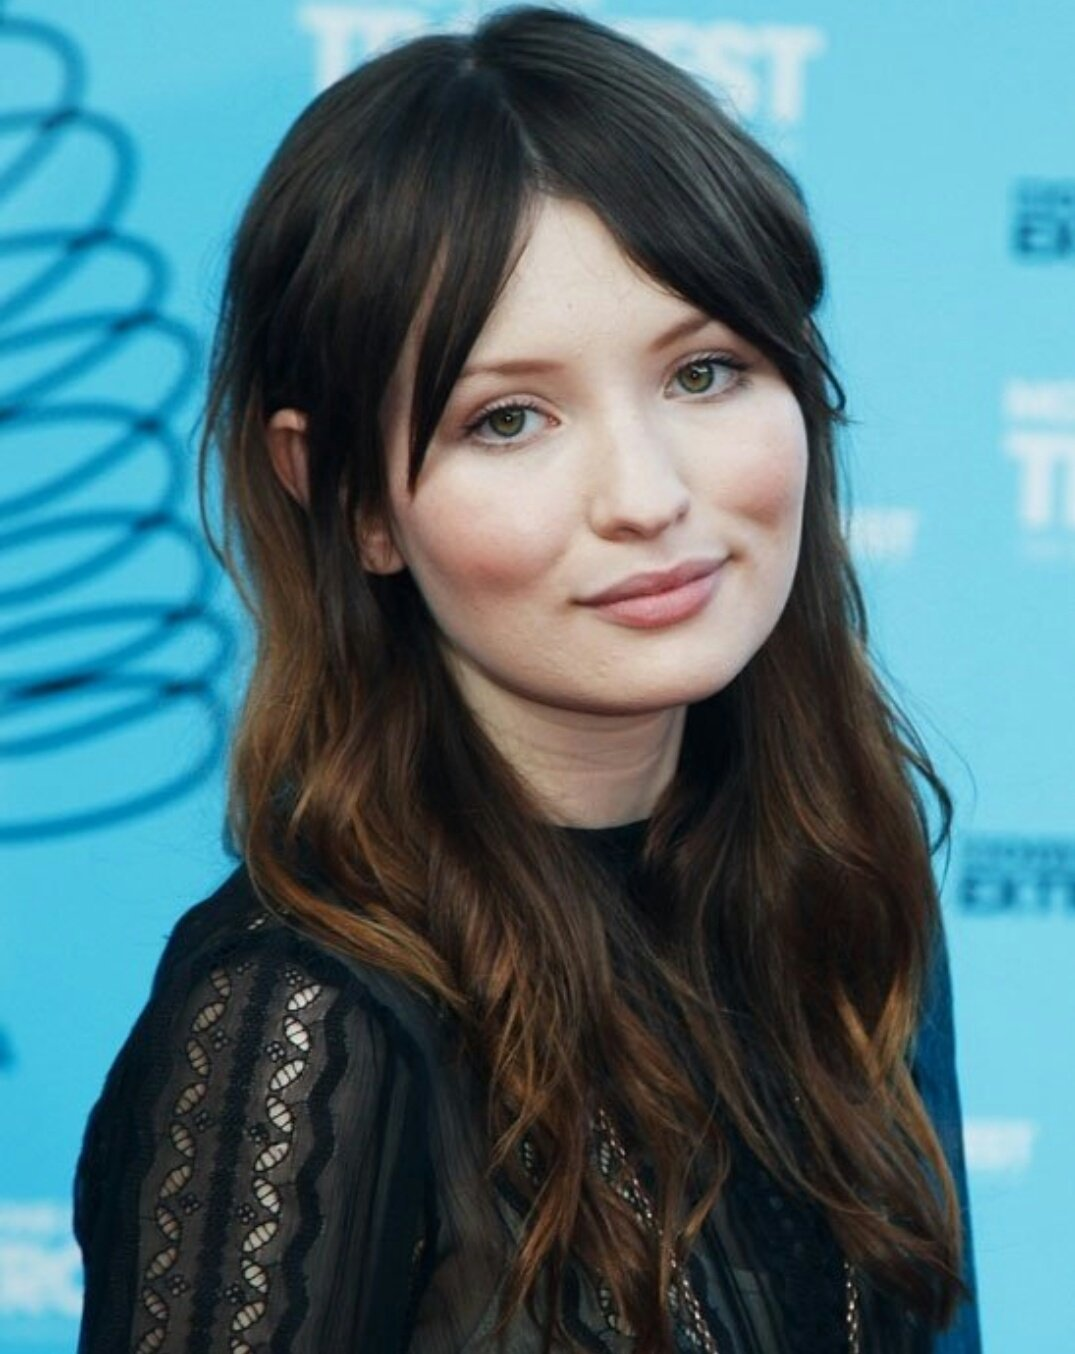 Happy Birthday To Emily Browning!